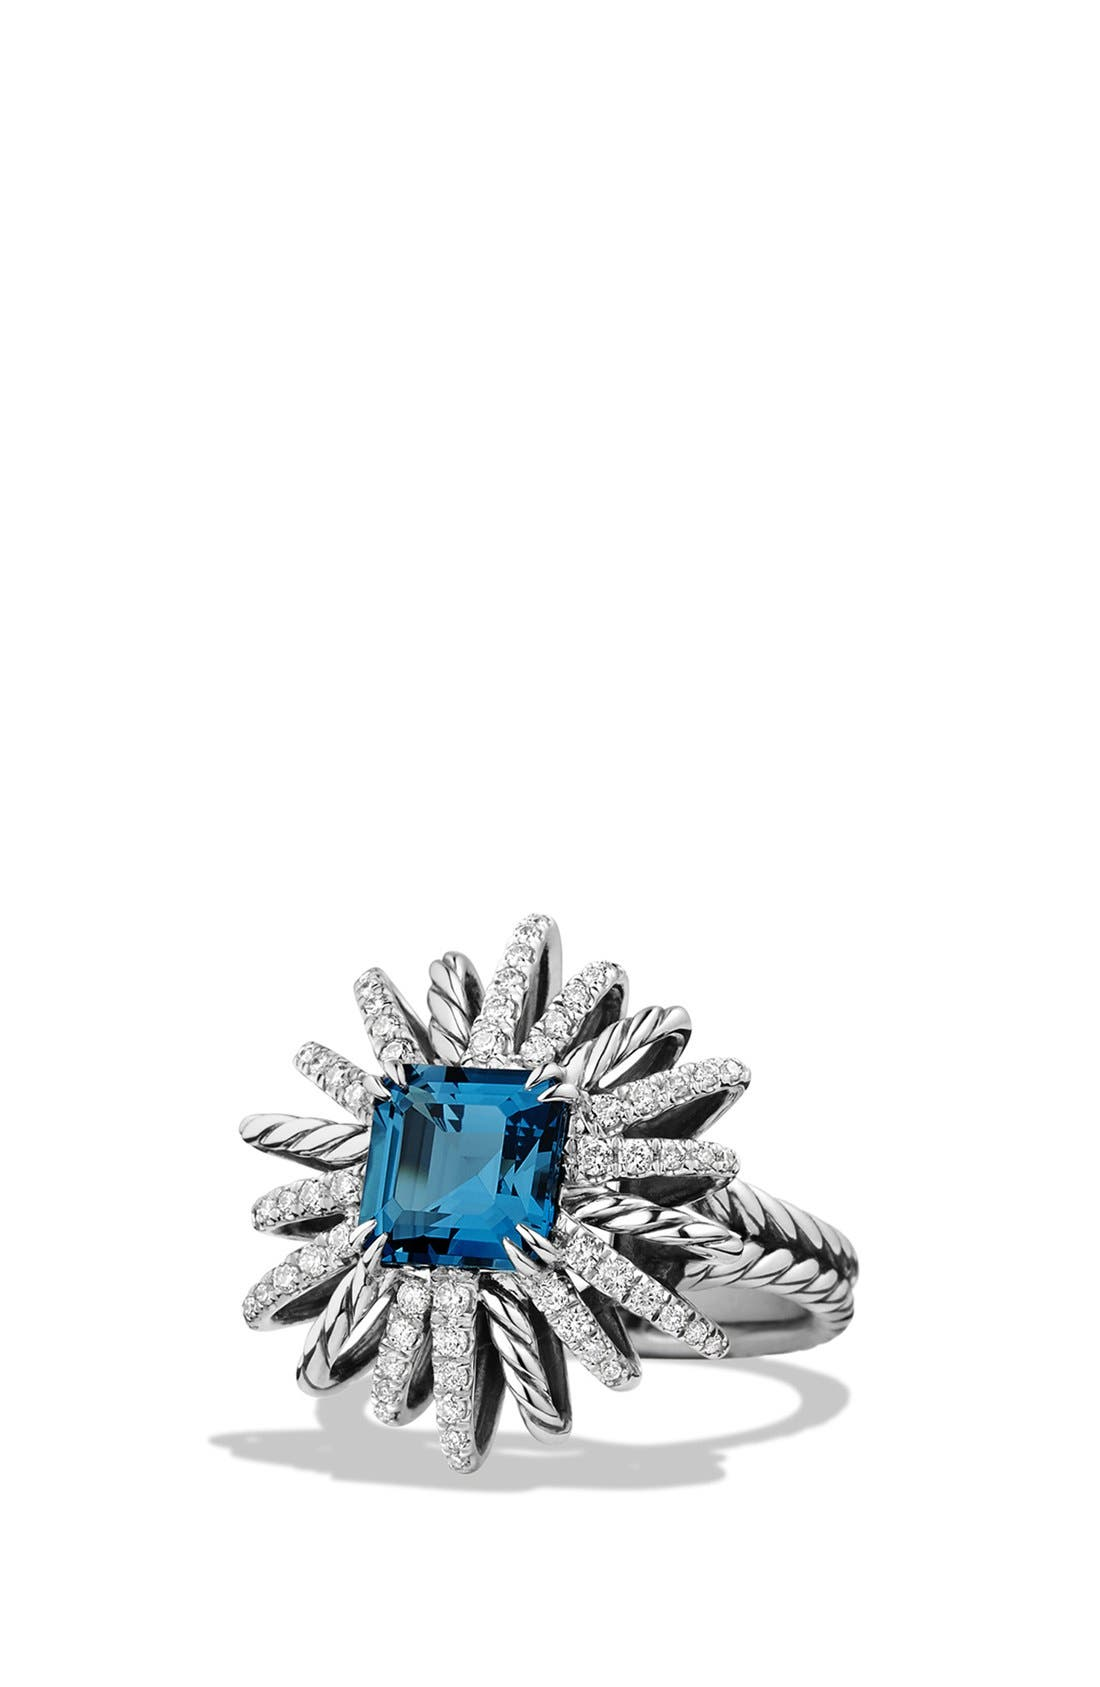 Main Image - David Yurman 'Starburst' Ring with Diamonds in Silver